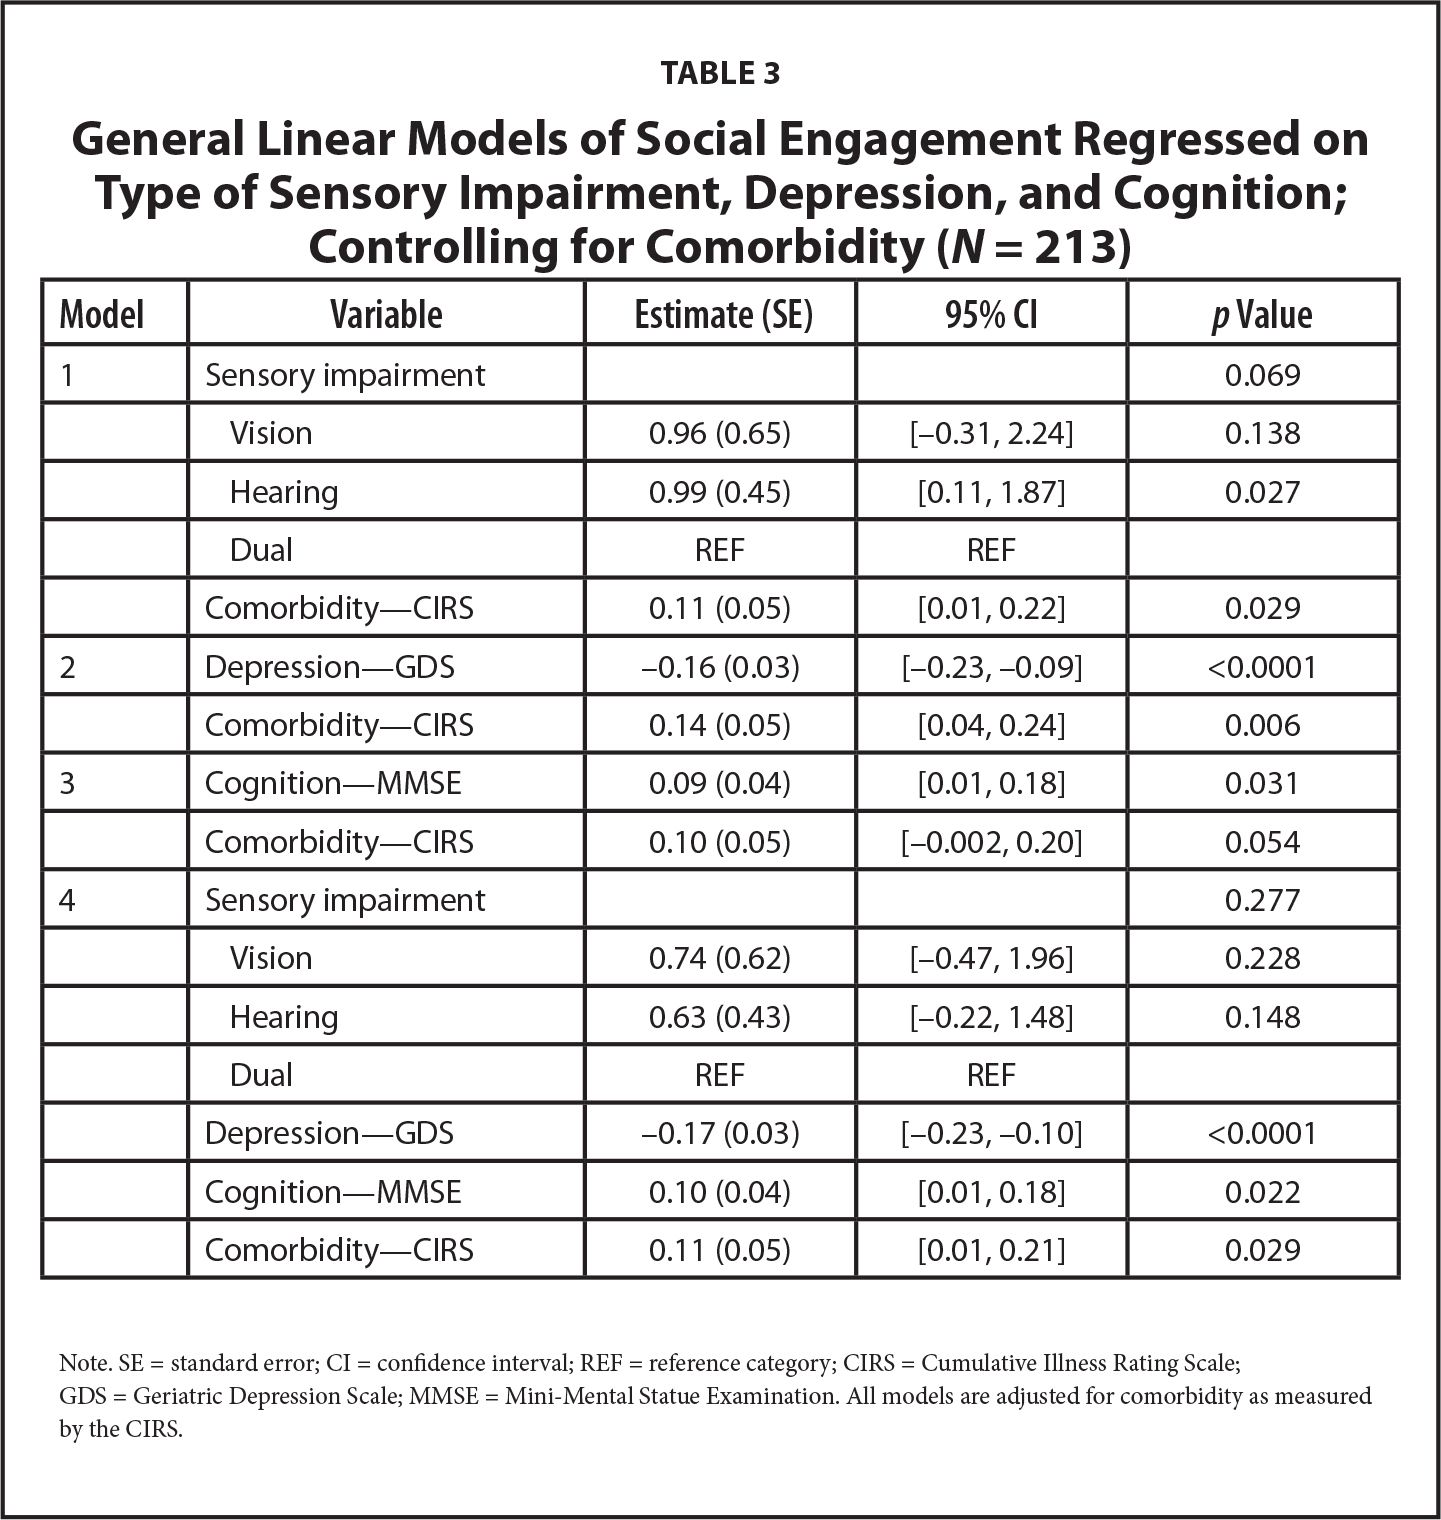 General Linear Models of Social Engagement Regressed on Type of Sensory Impairment, Depression, and Cognition; Controlling for Comorbidity (N = 213)